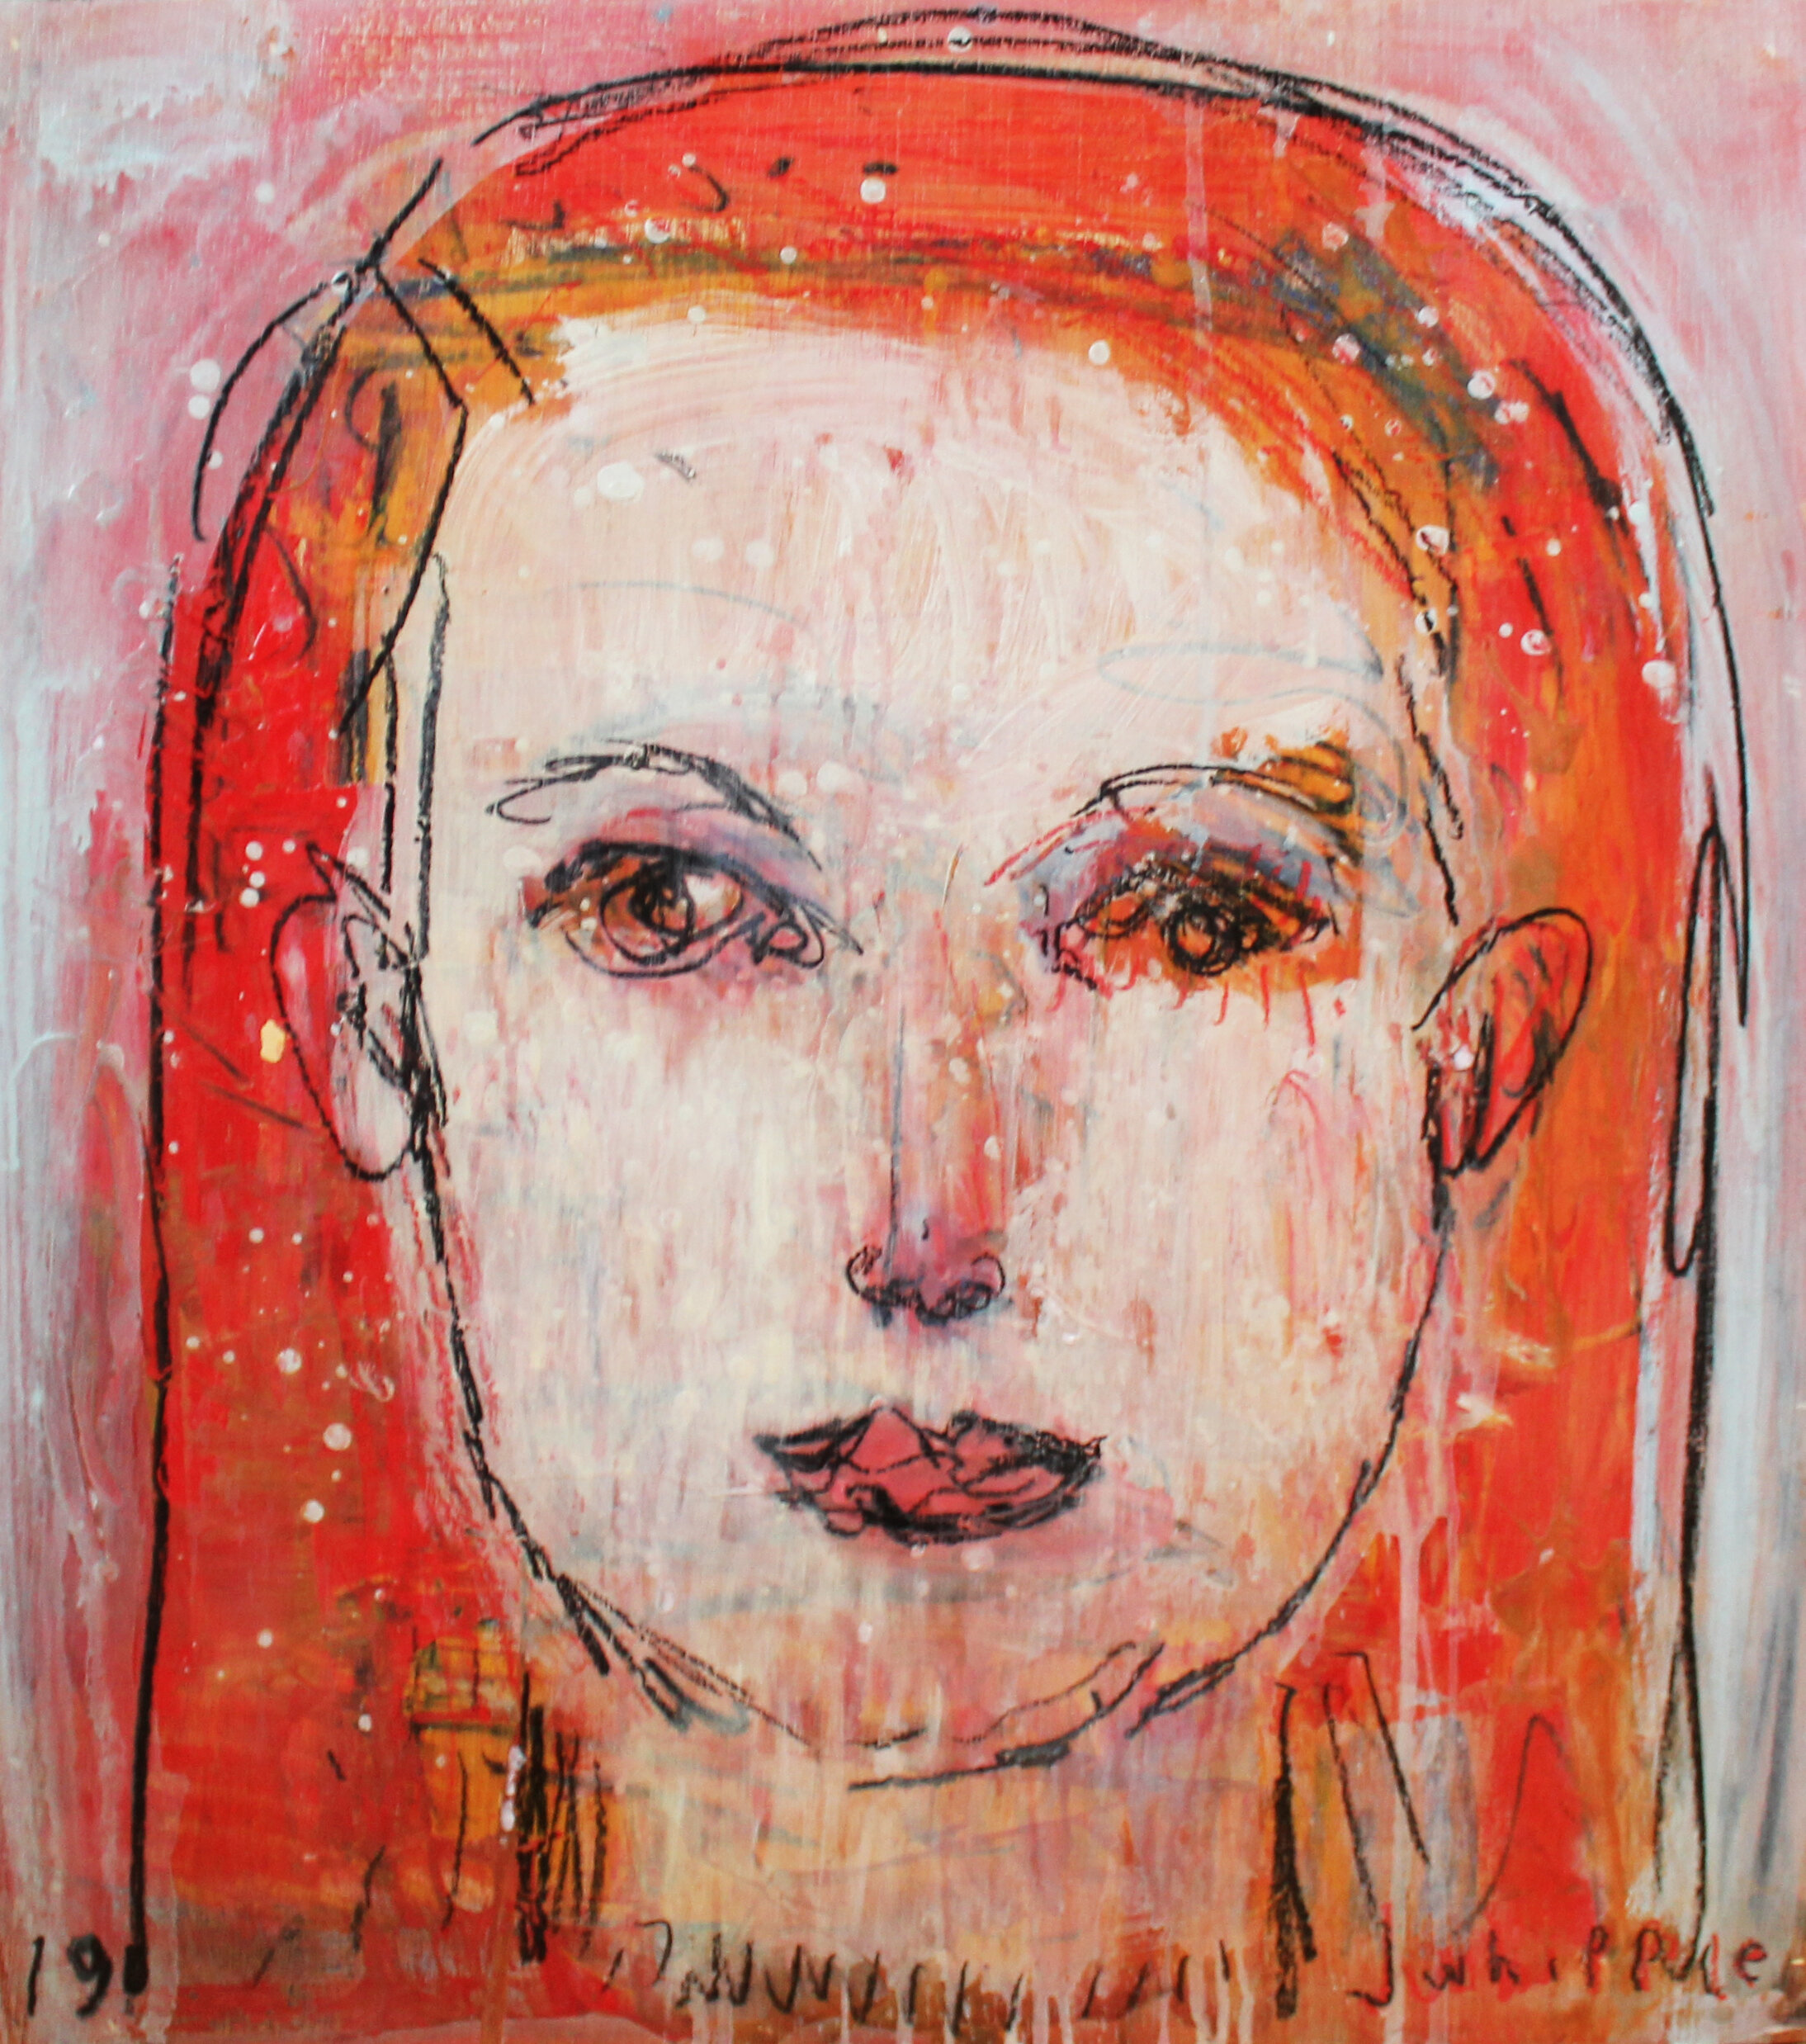 Face Series 3 (Red Girl)